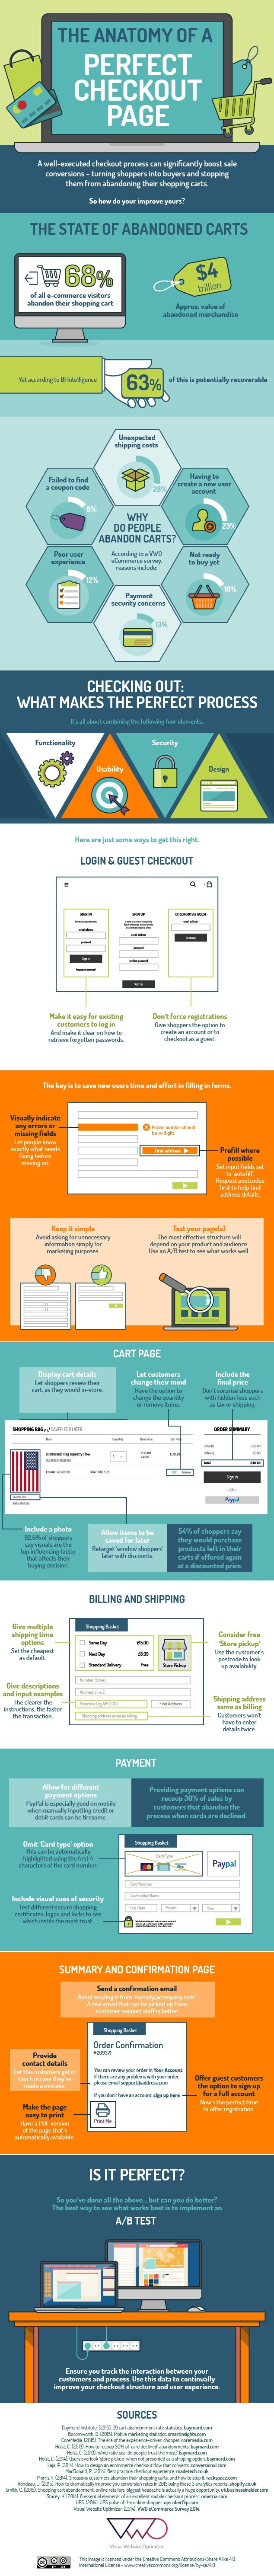 69 best eCommerce images on Pinterest | Infographic, Digital ...